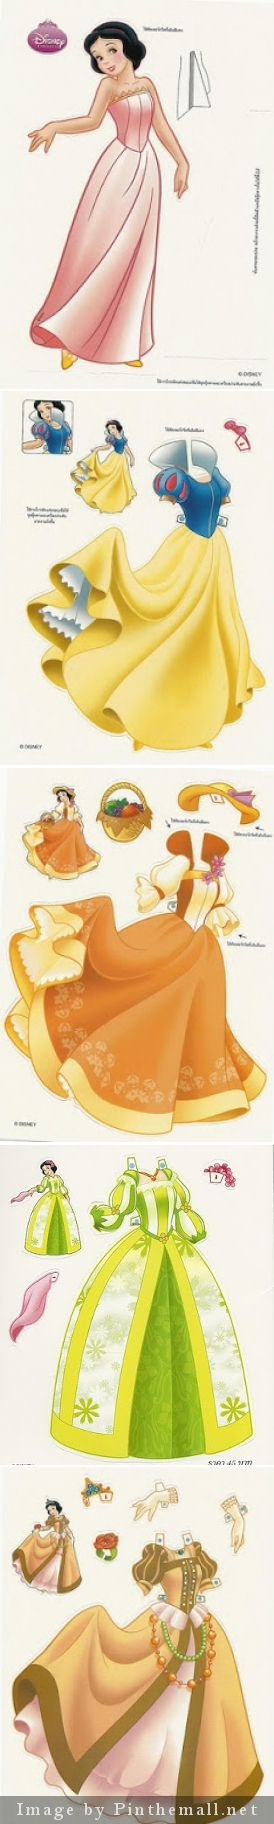 Foreign Disney Princess Dolls from Miss Missy Paper Dolls - So cute and so many! http://missmissypaperdolls.blogspot.ca - created via http://pinthemall.net